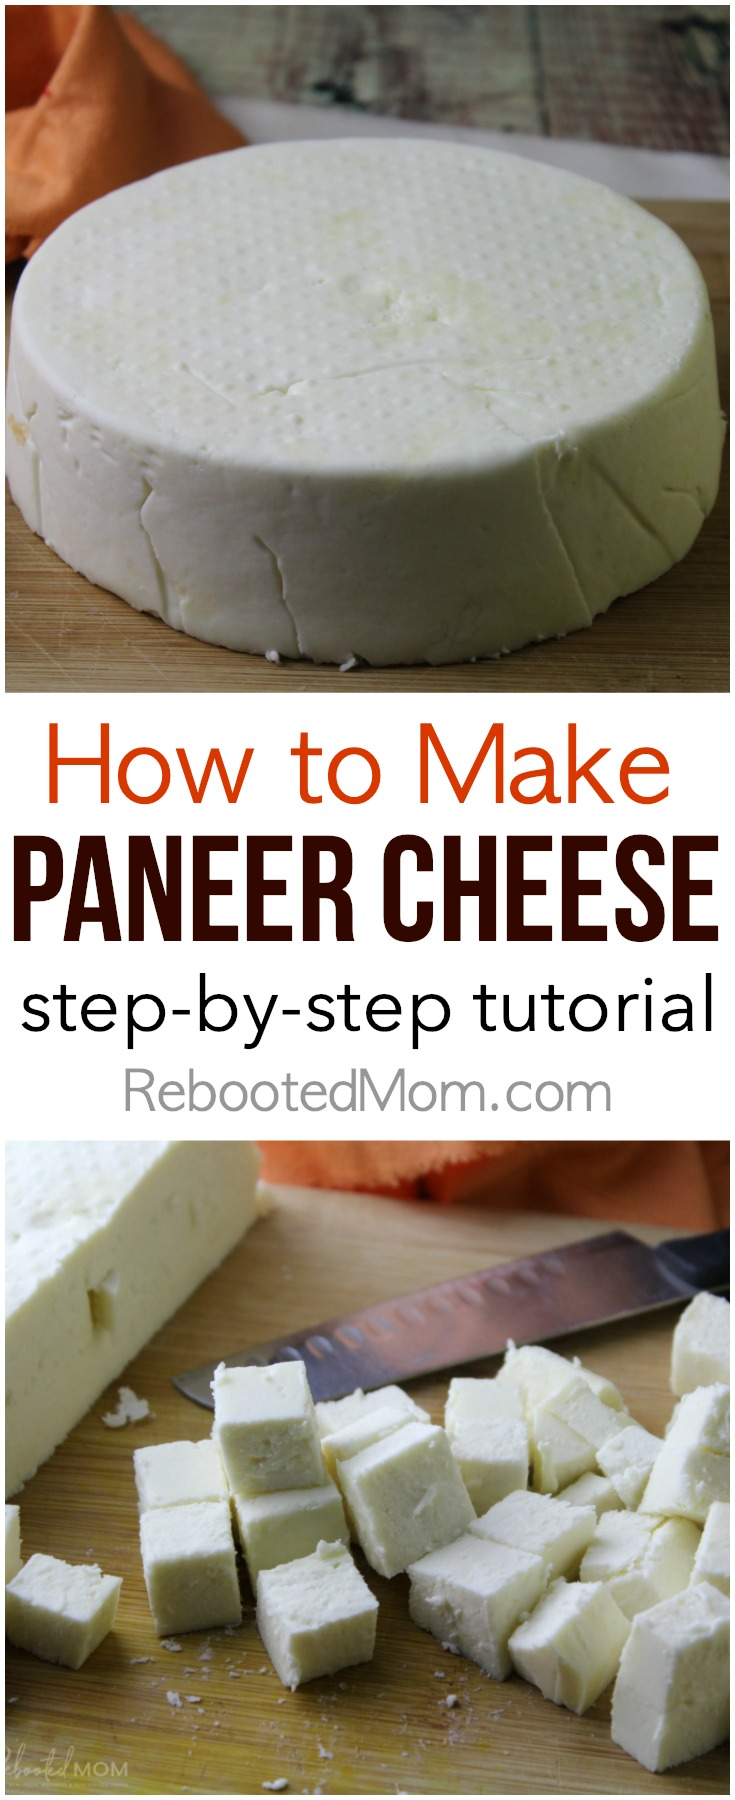 Learn how to make paneer cheese at home with these simple step by step directions that will allow you to make this deliciously soft, cubed cheese.